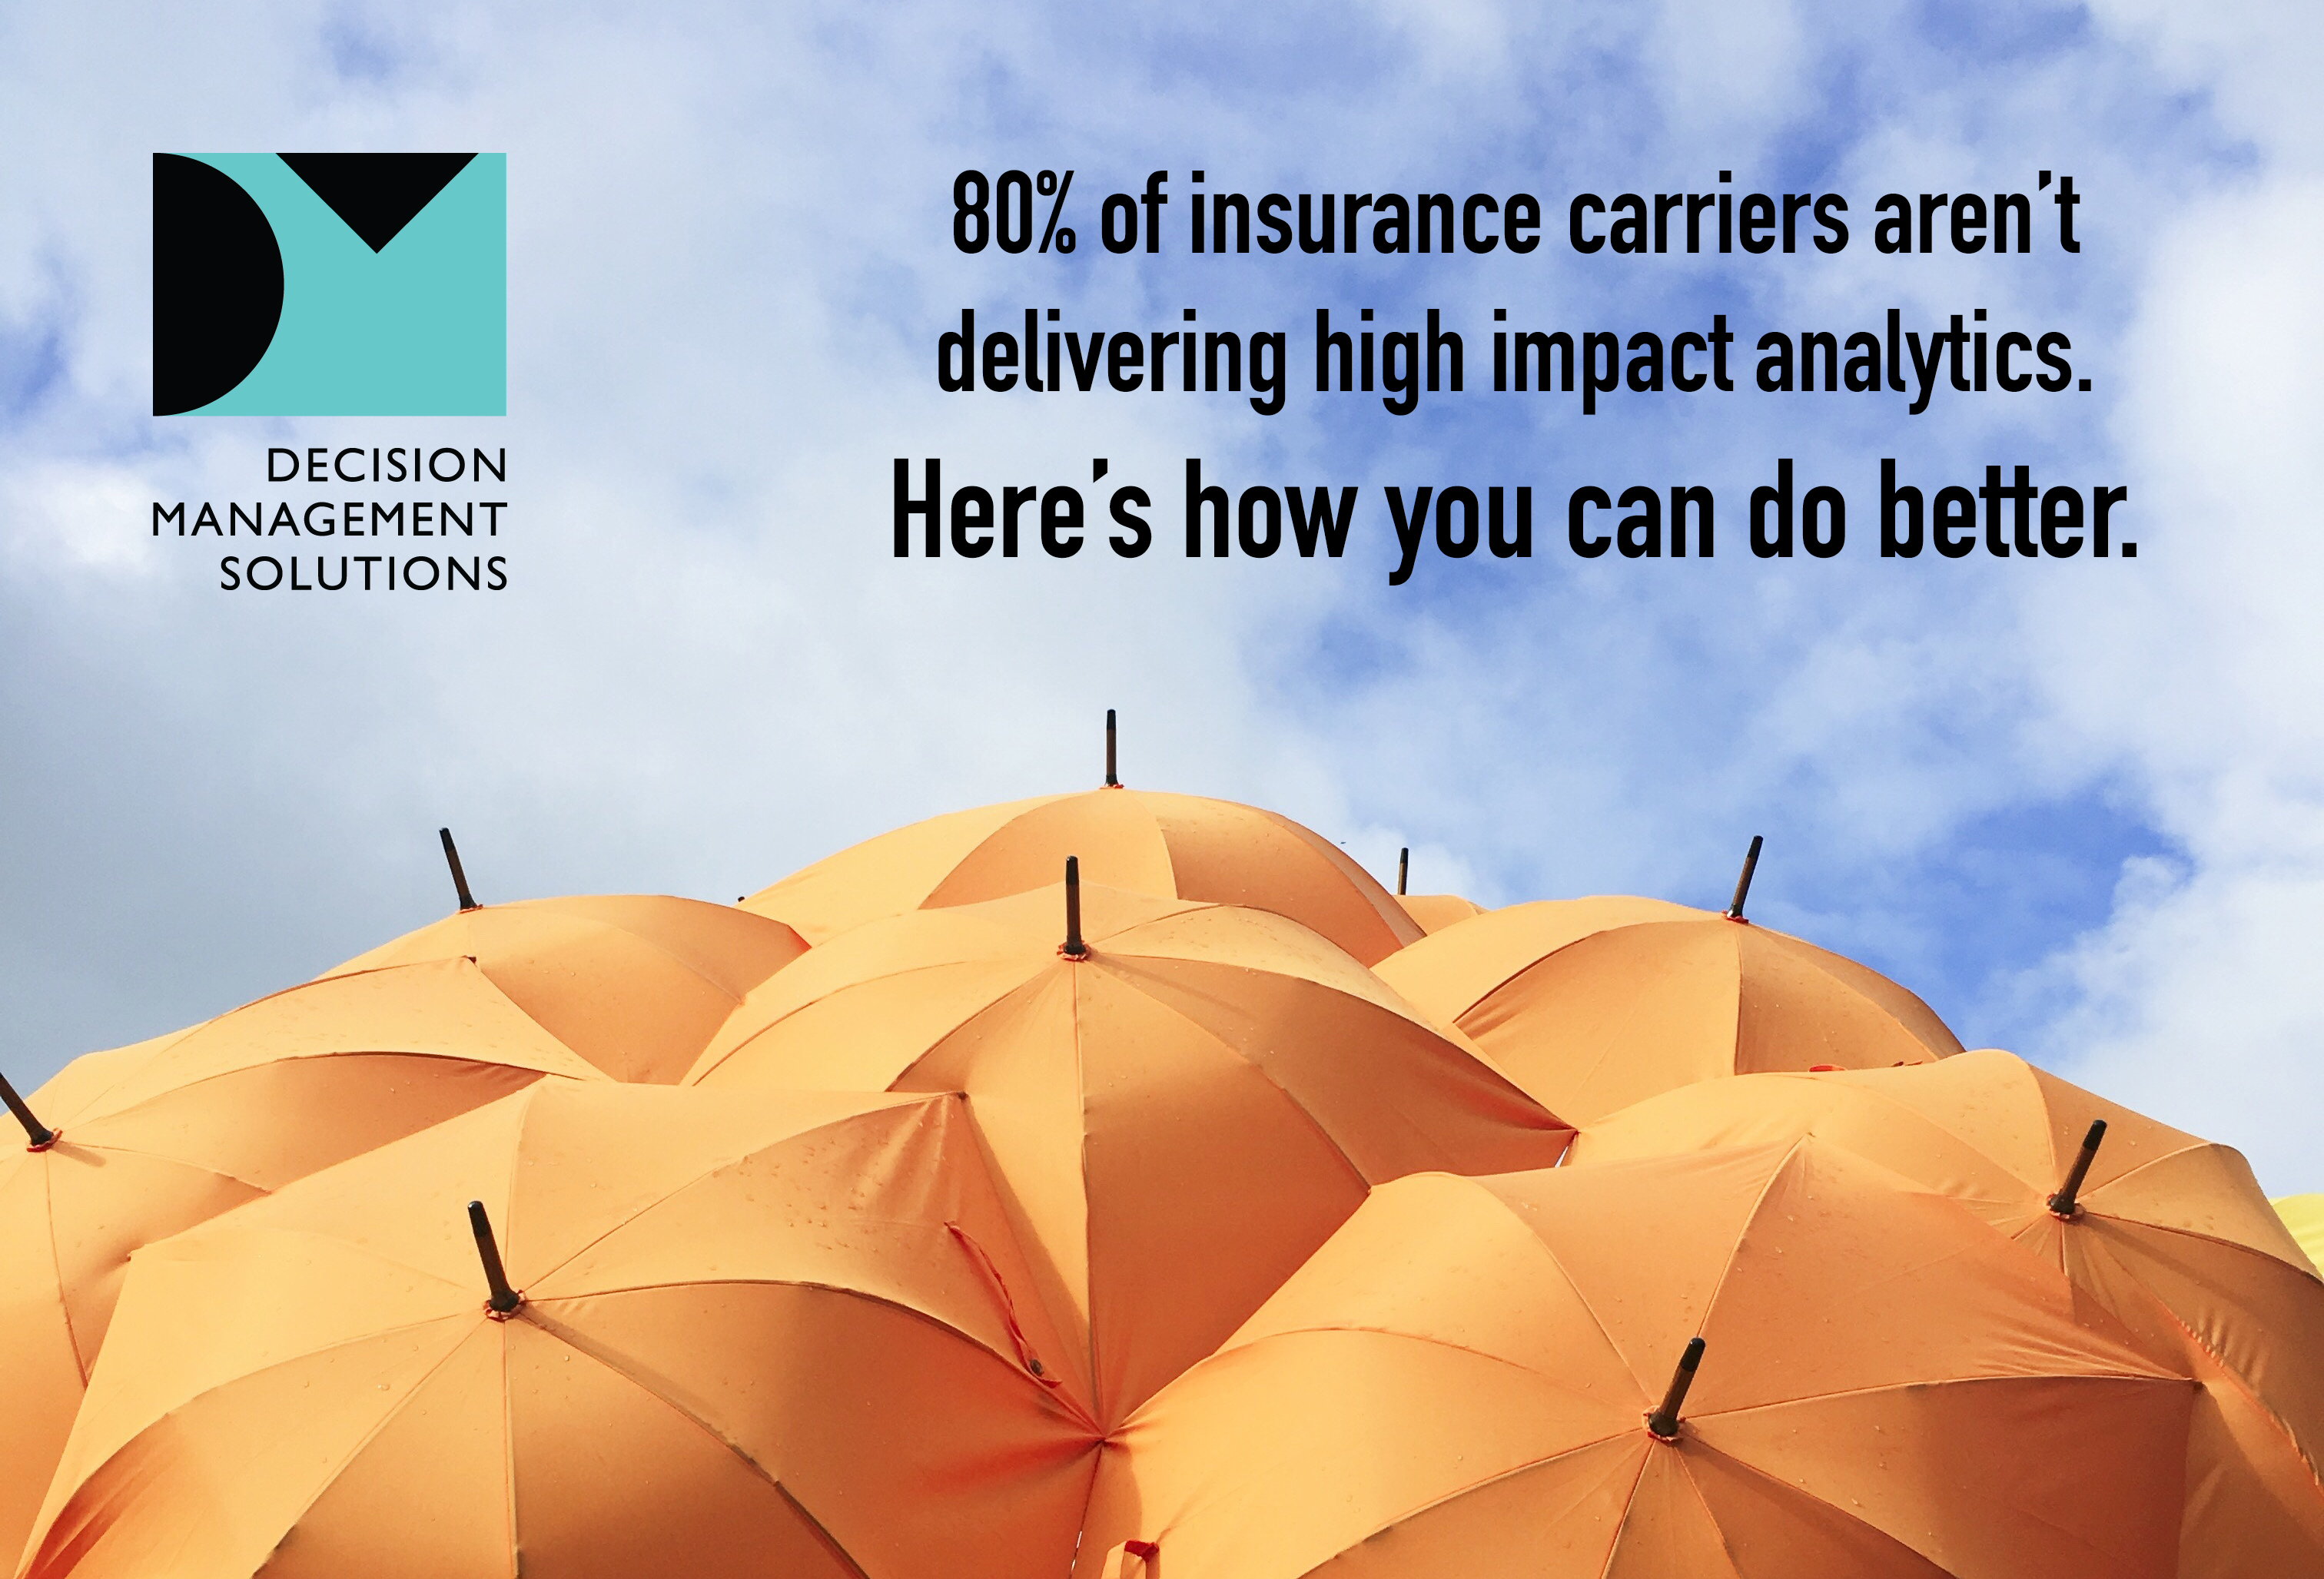 80% of insurance carriers aren't delivering high impact analytics. Here's how you can do better.